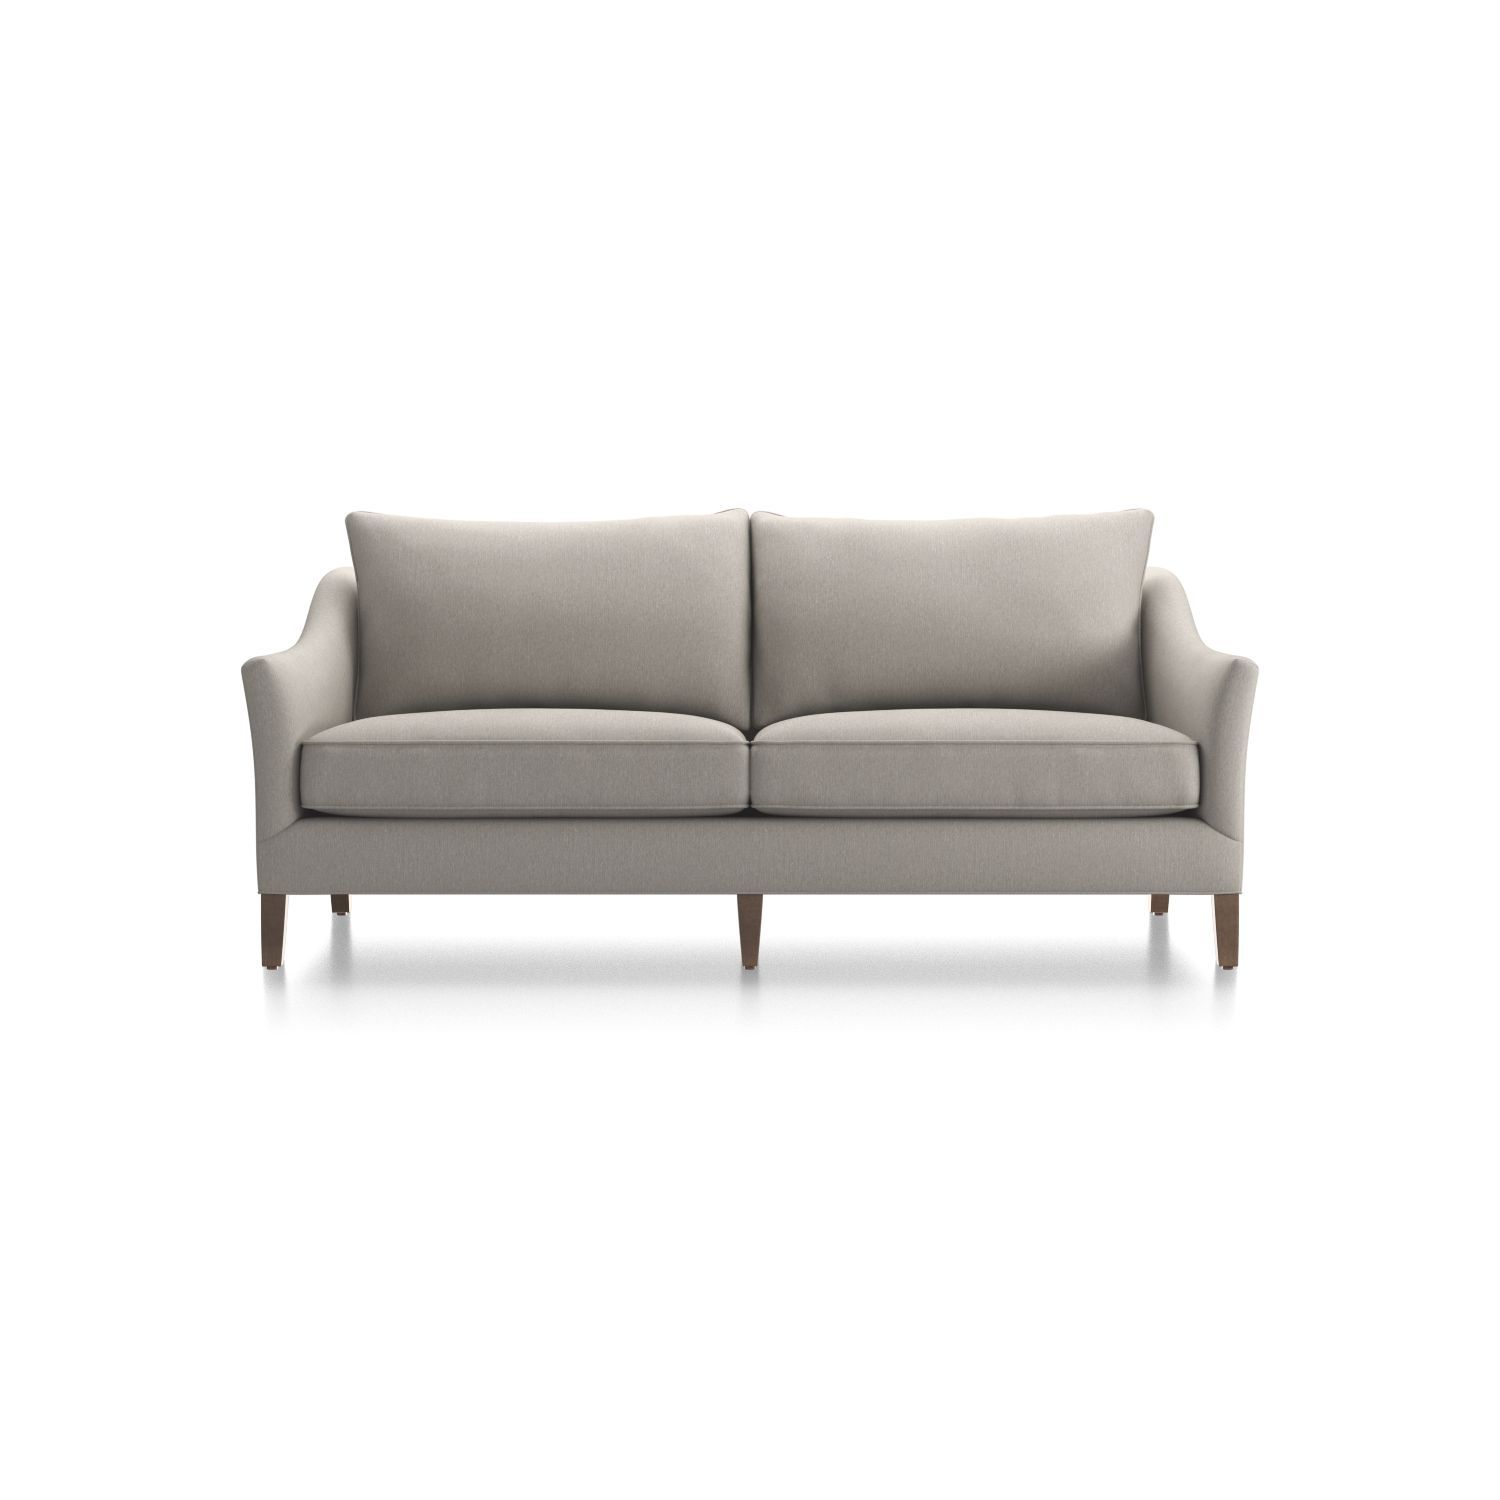 Keely Apartment Sofa Reviews Crate